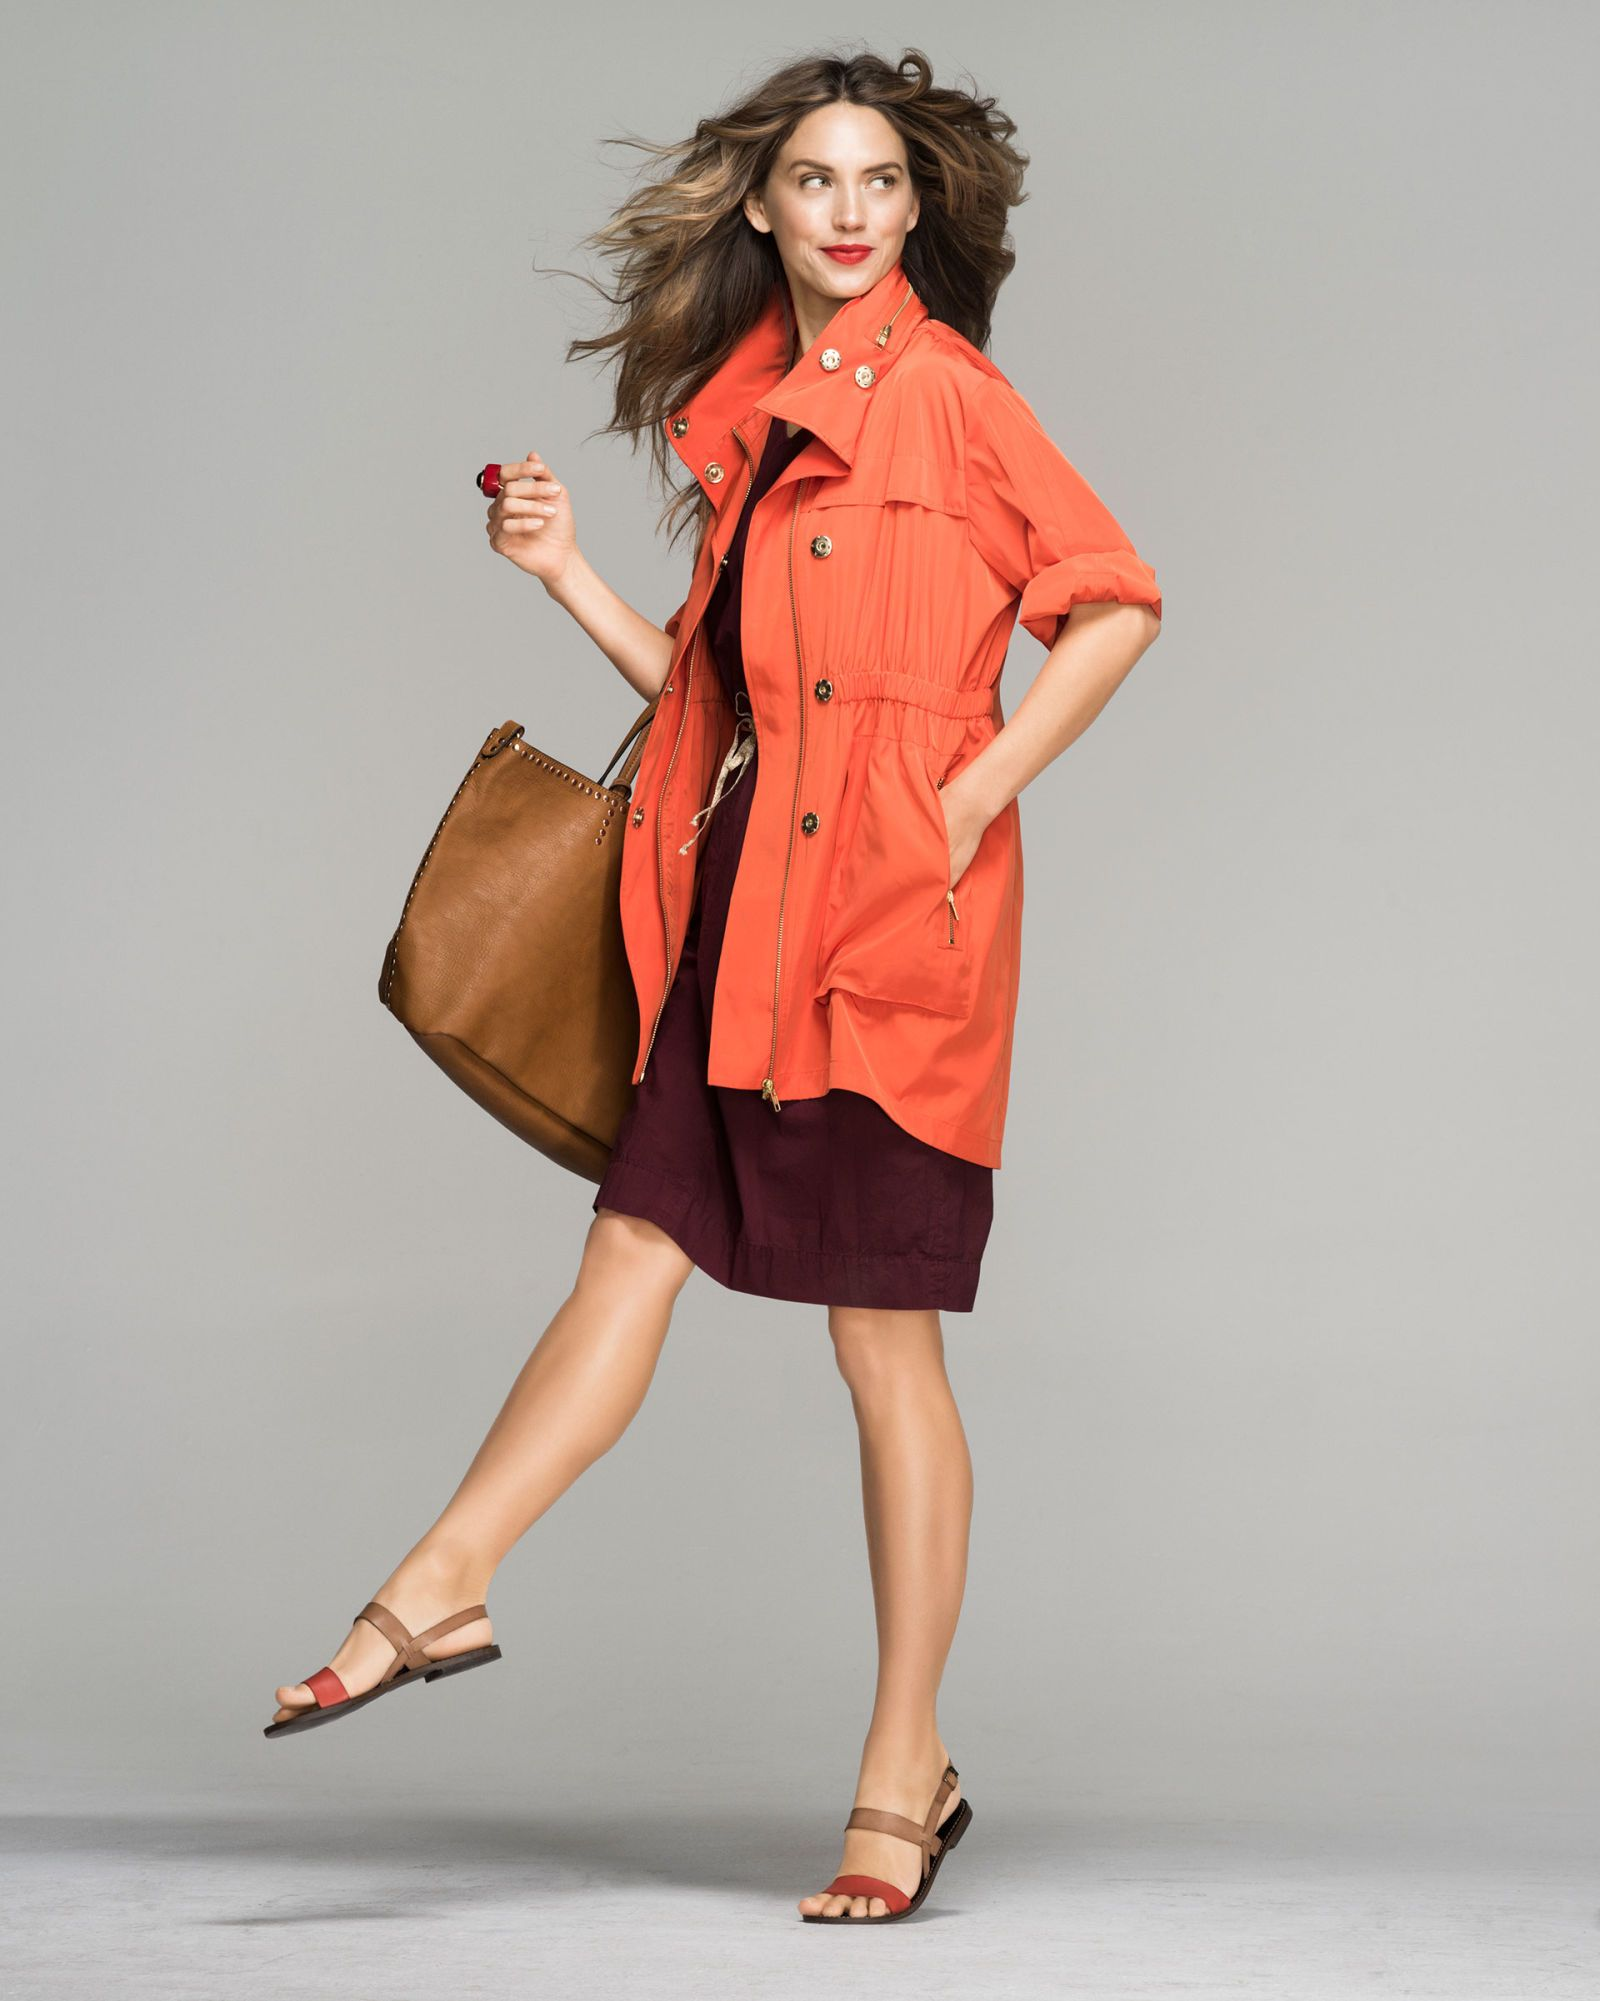 Color Combinations For Spring Fashion - Colors For Spring 2013